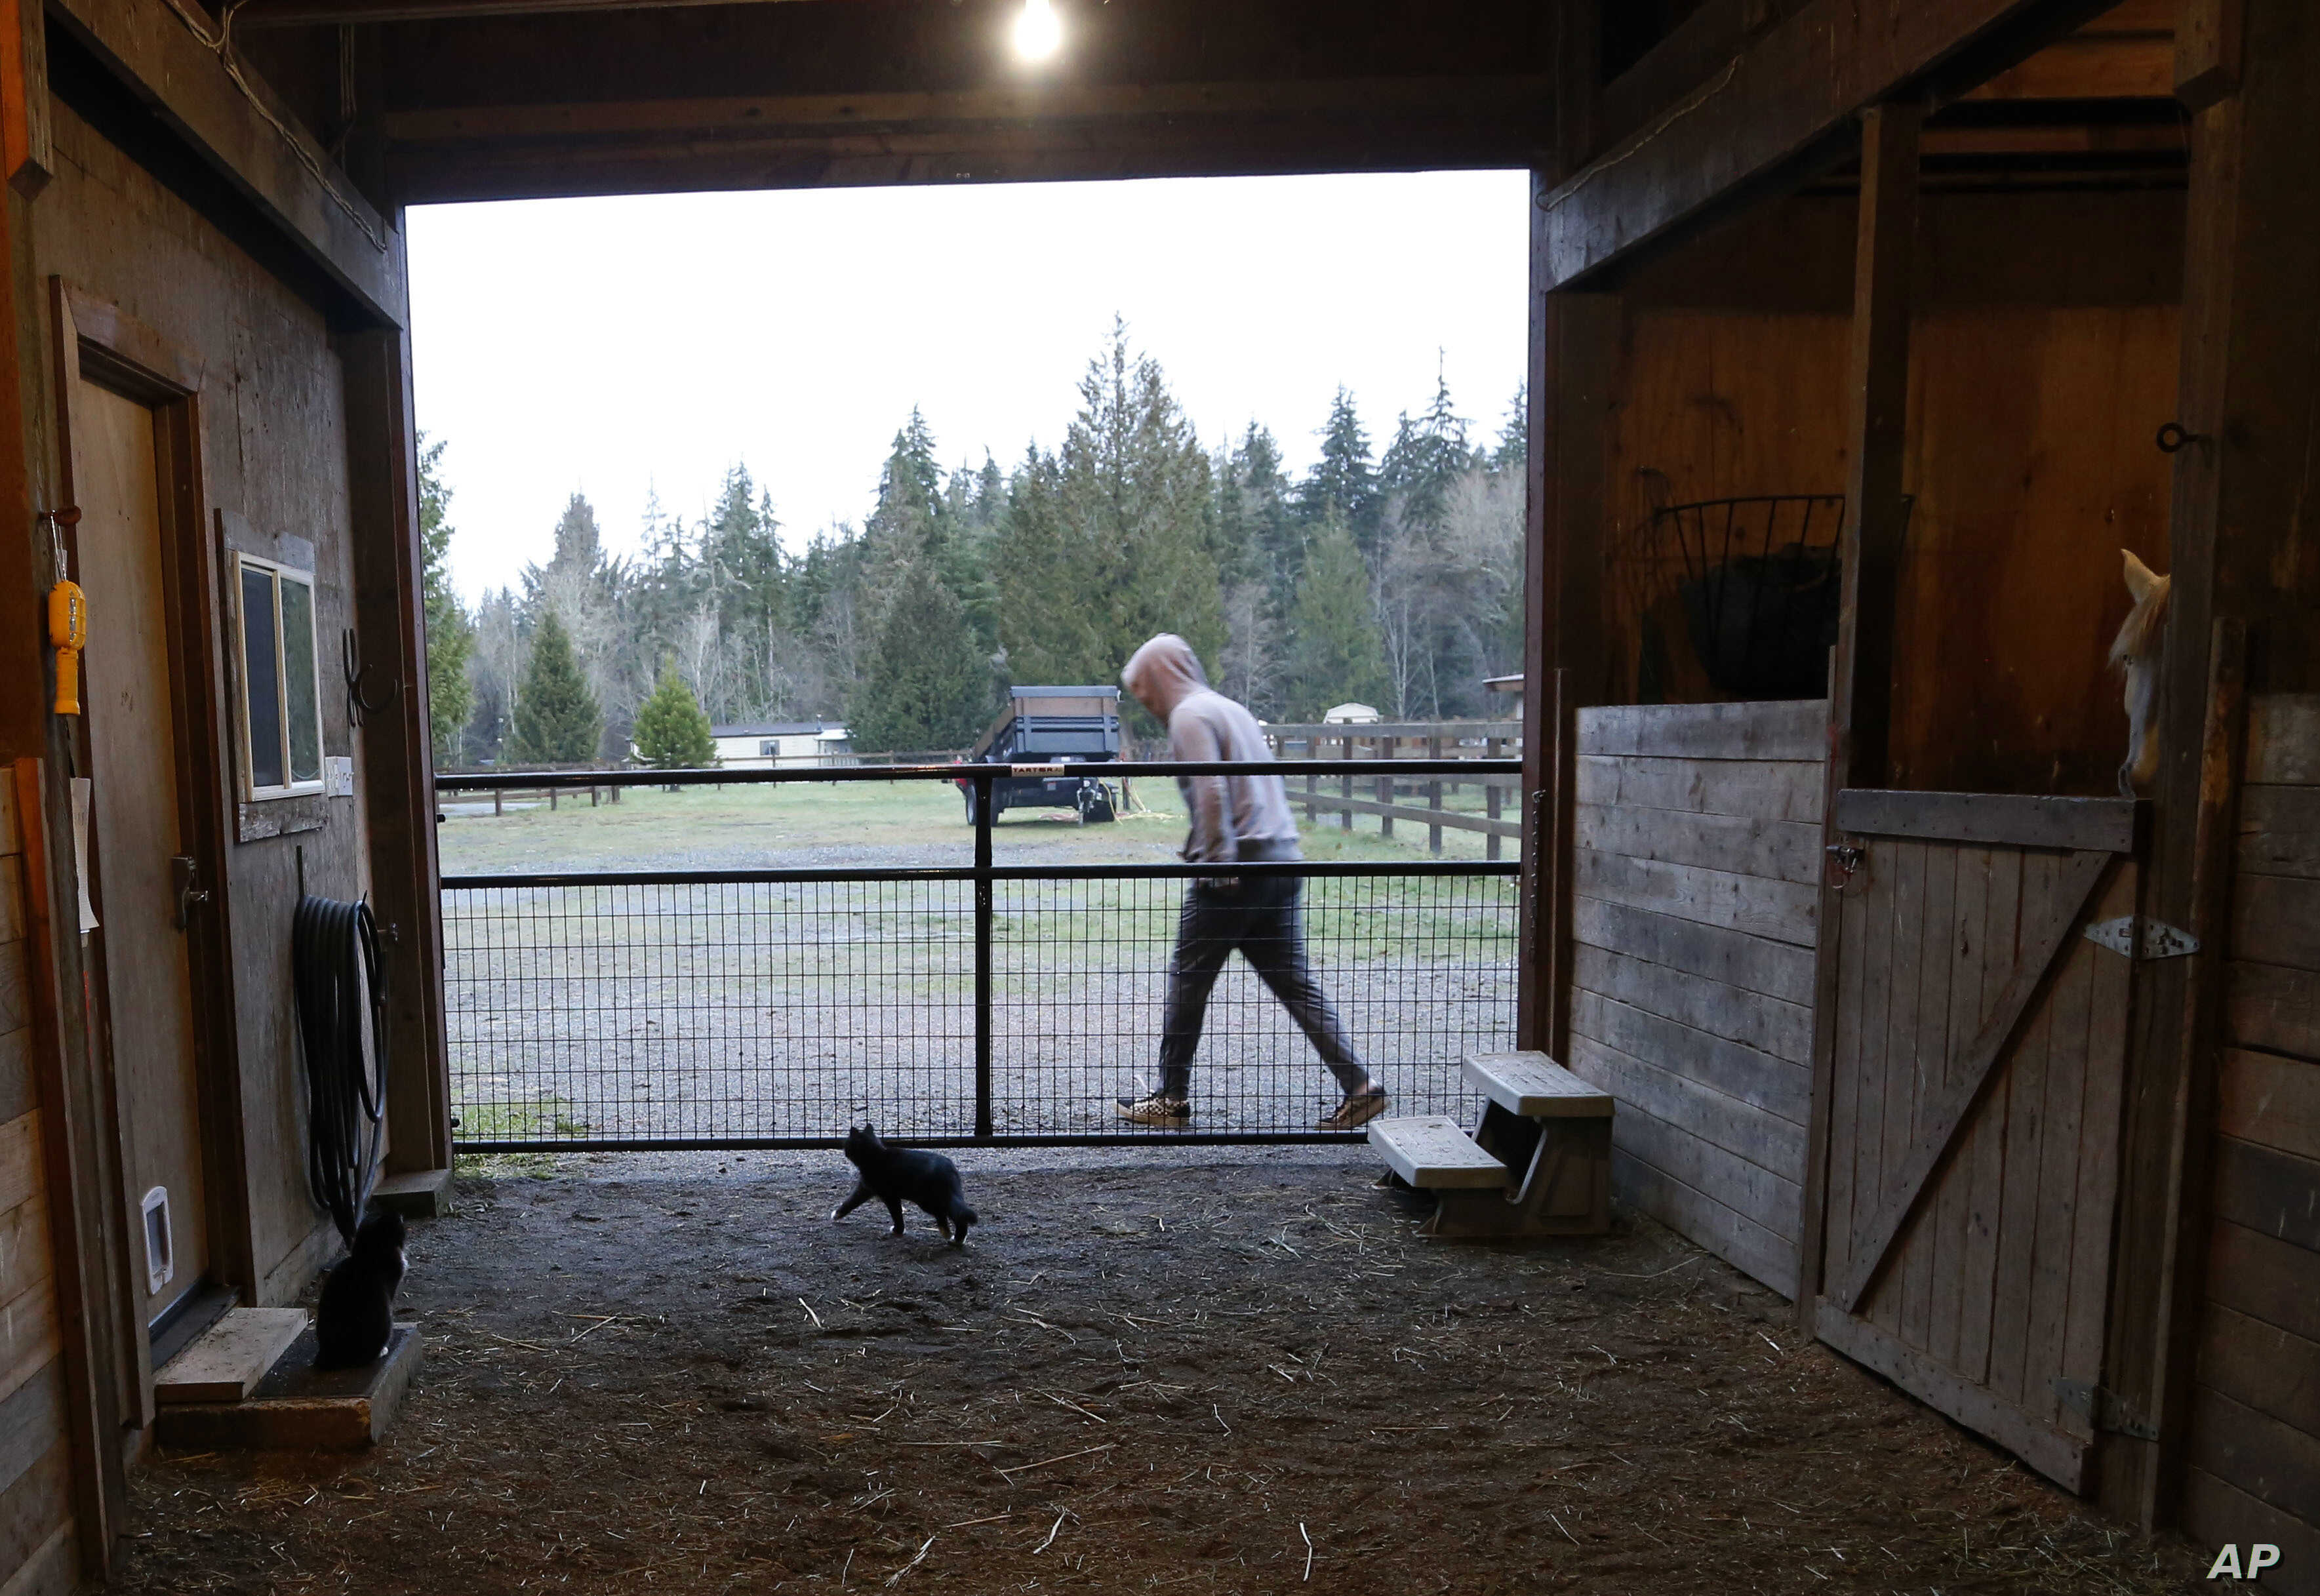 FILE - Robel, an 18-year-old tech addict from California, leaves a barn after helping feed animals at the Rise Up Ranch outside rural Carnation, Wash., Dec. 10, 2018.